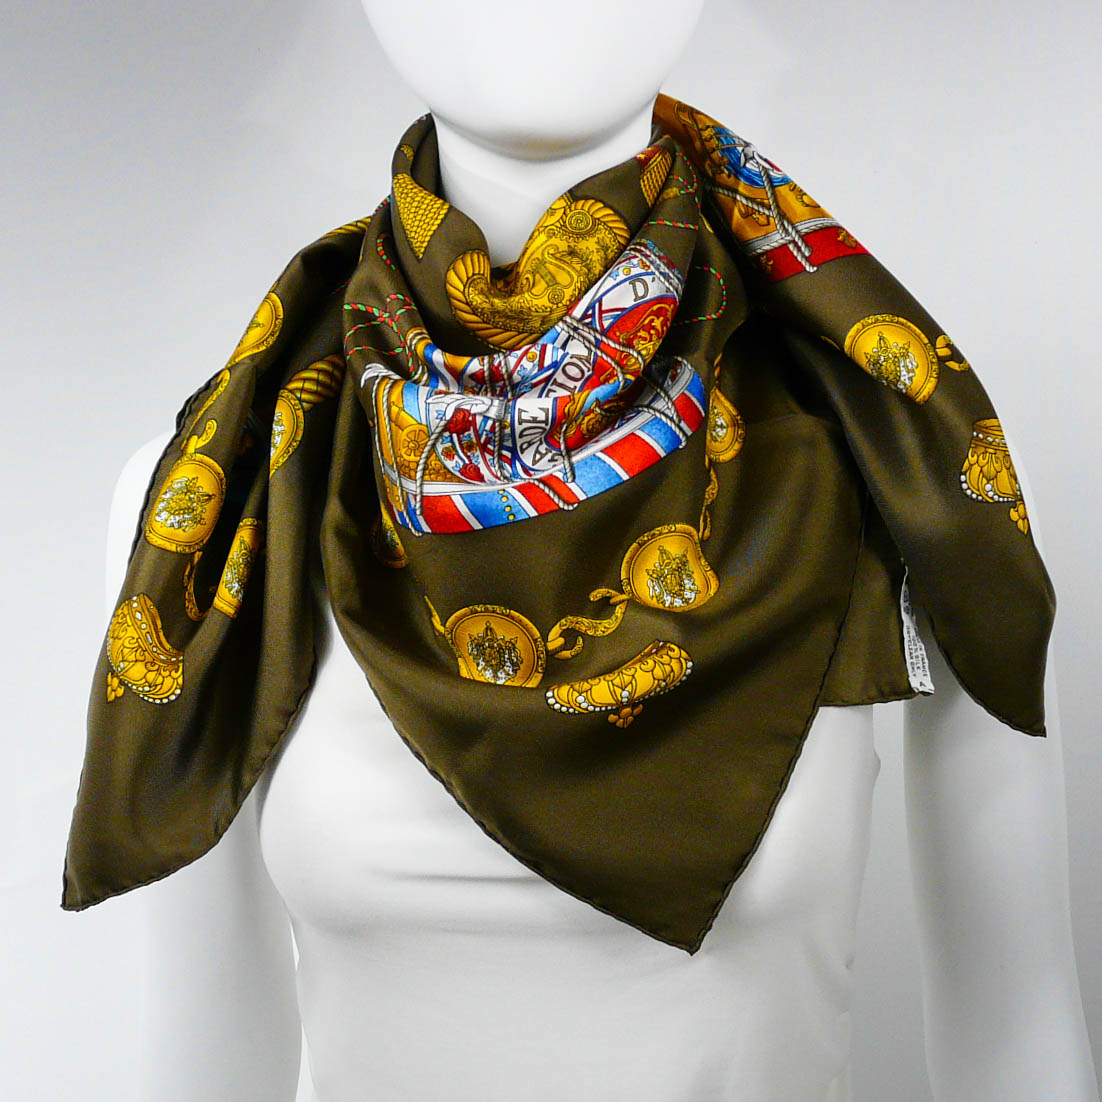 les-tambours-hermes-silk-carre-by-cdp